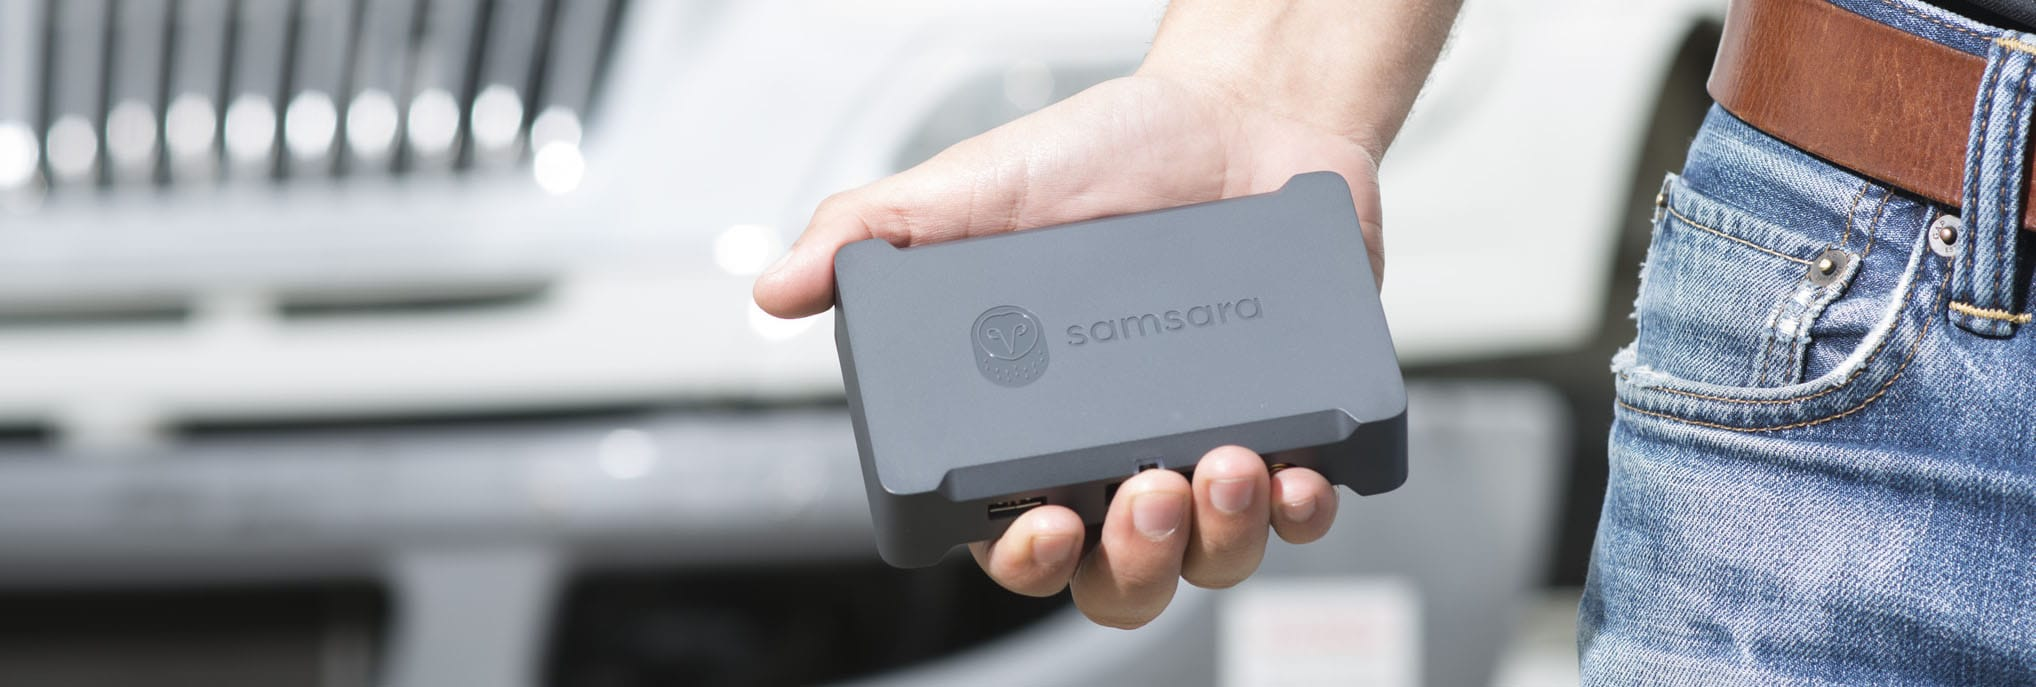 Introducing the VG34 IoT Gateway with High-Speed LTE Connectivity